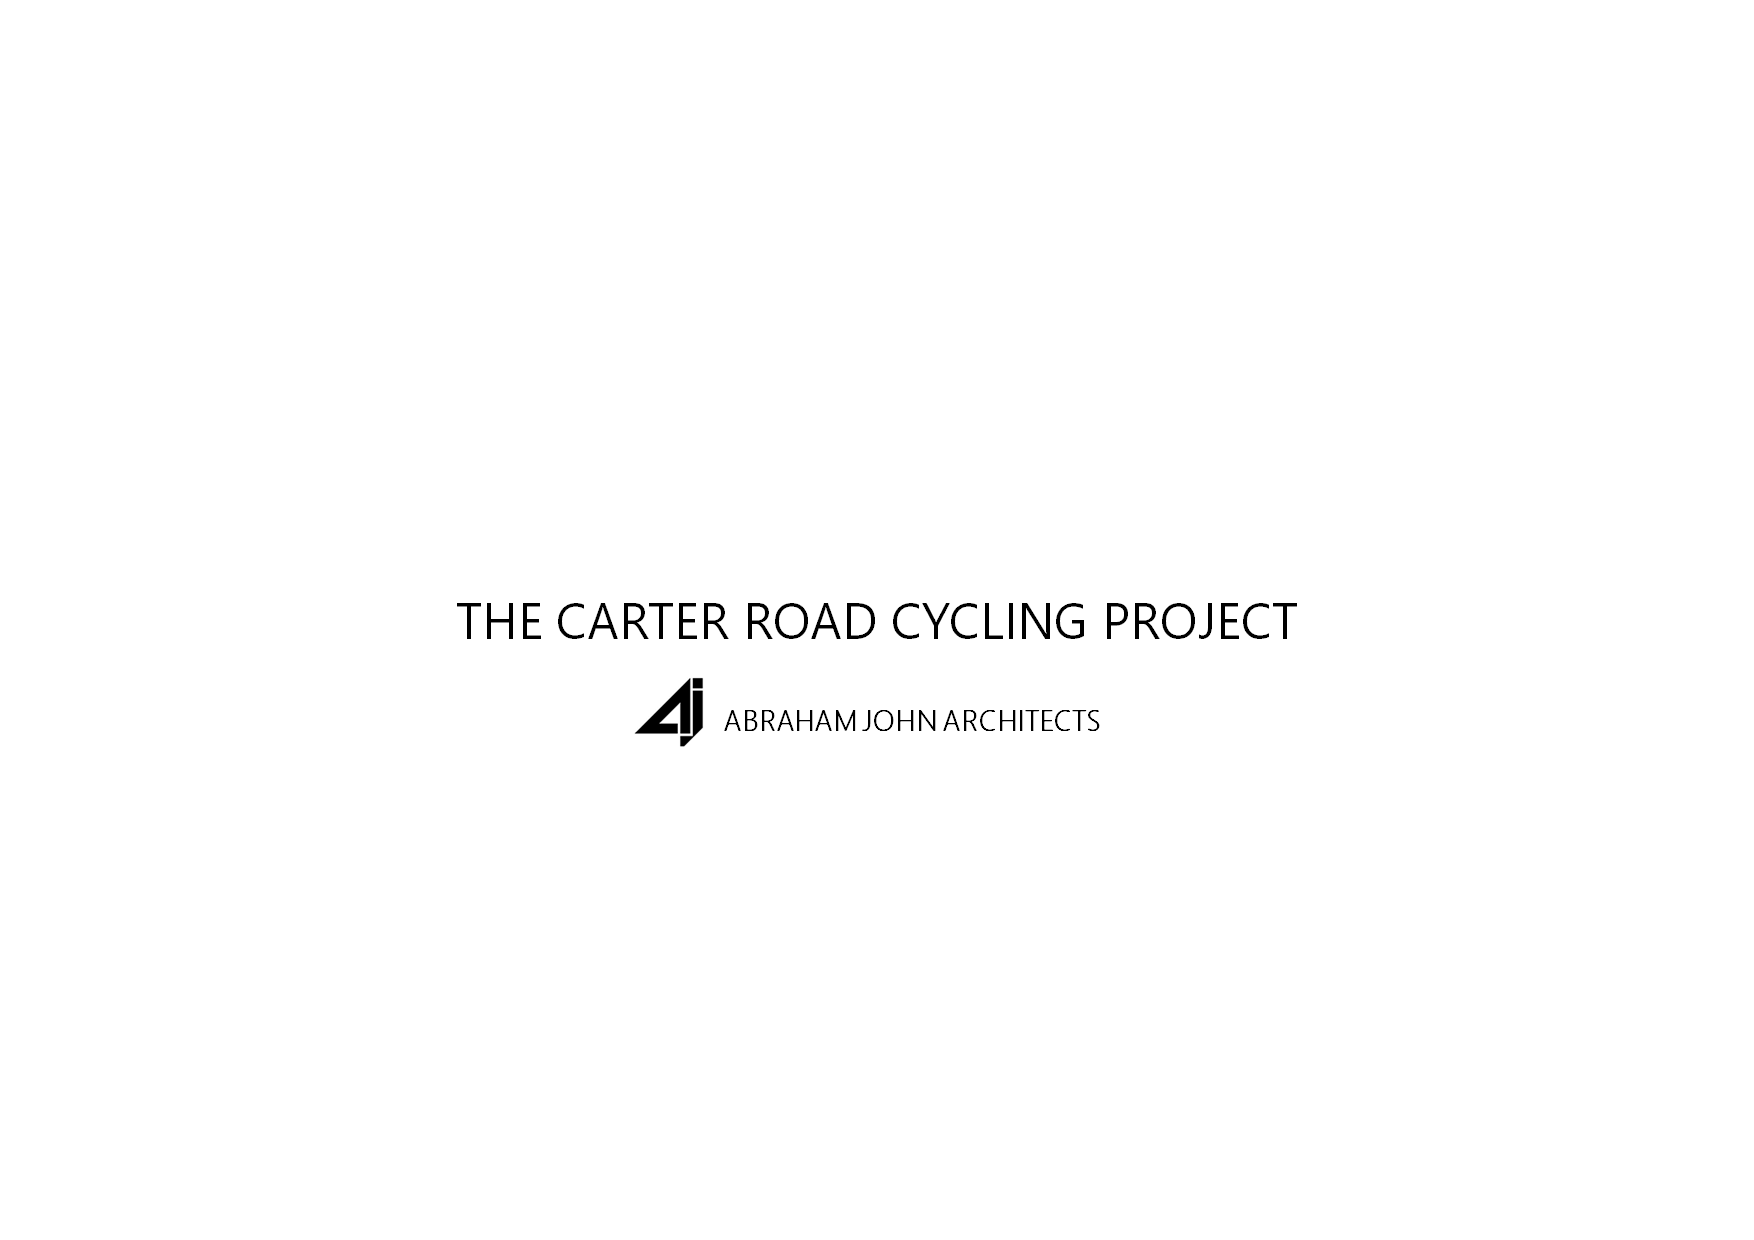 AJA_The_Carter_Road_Cycling_Project_01.PNG